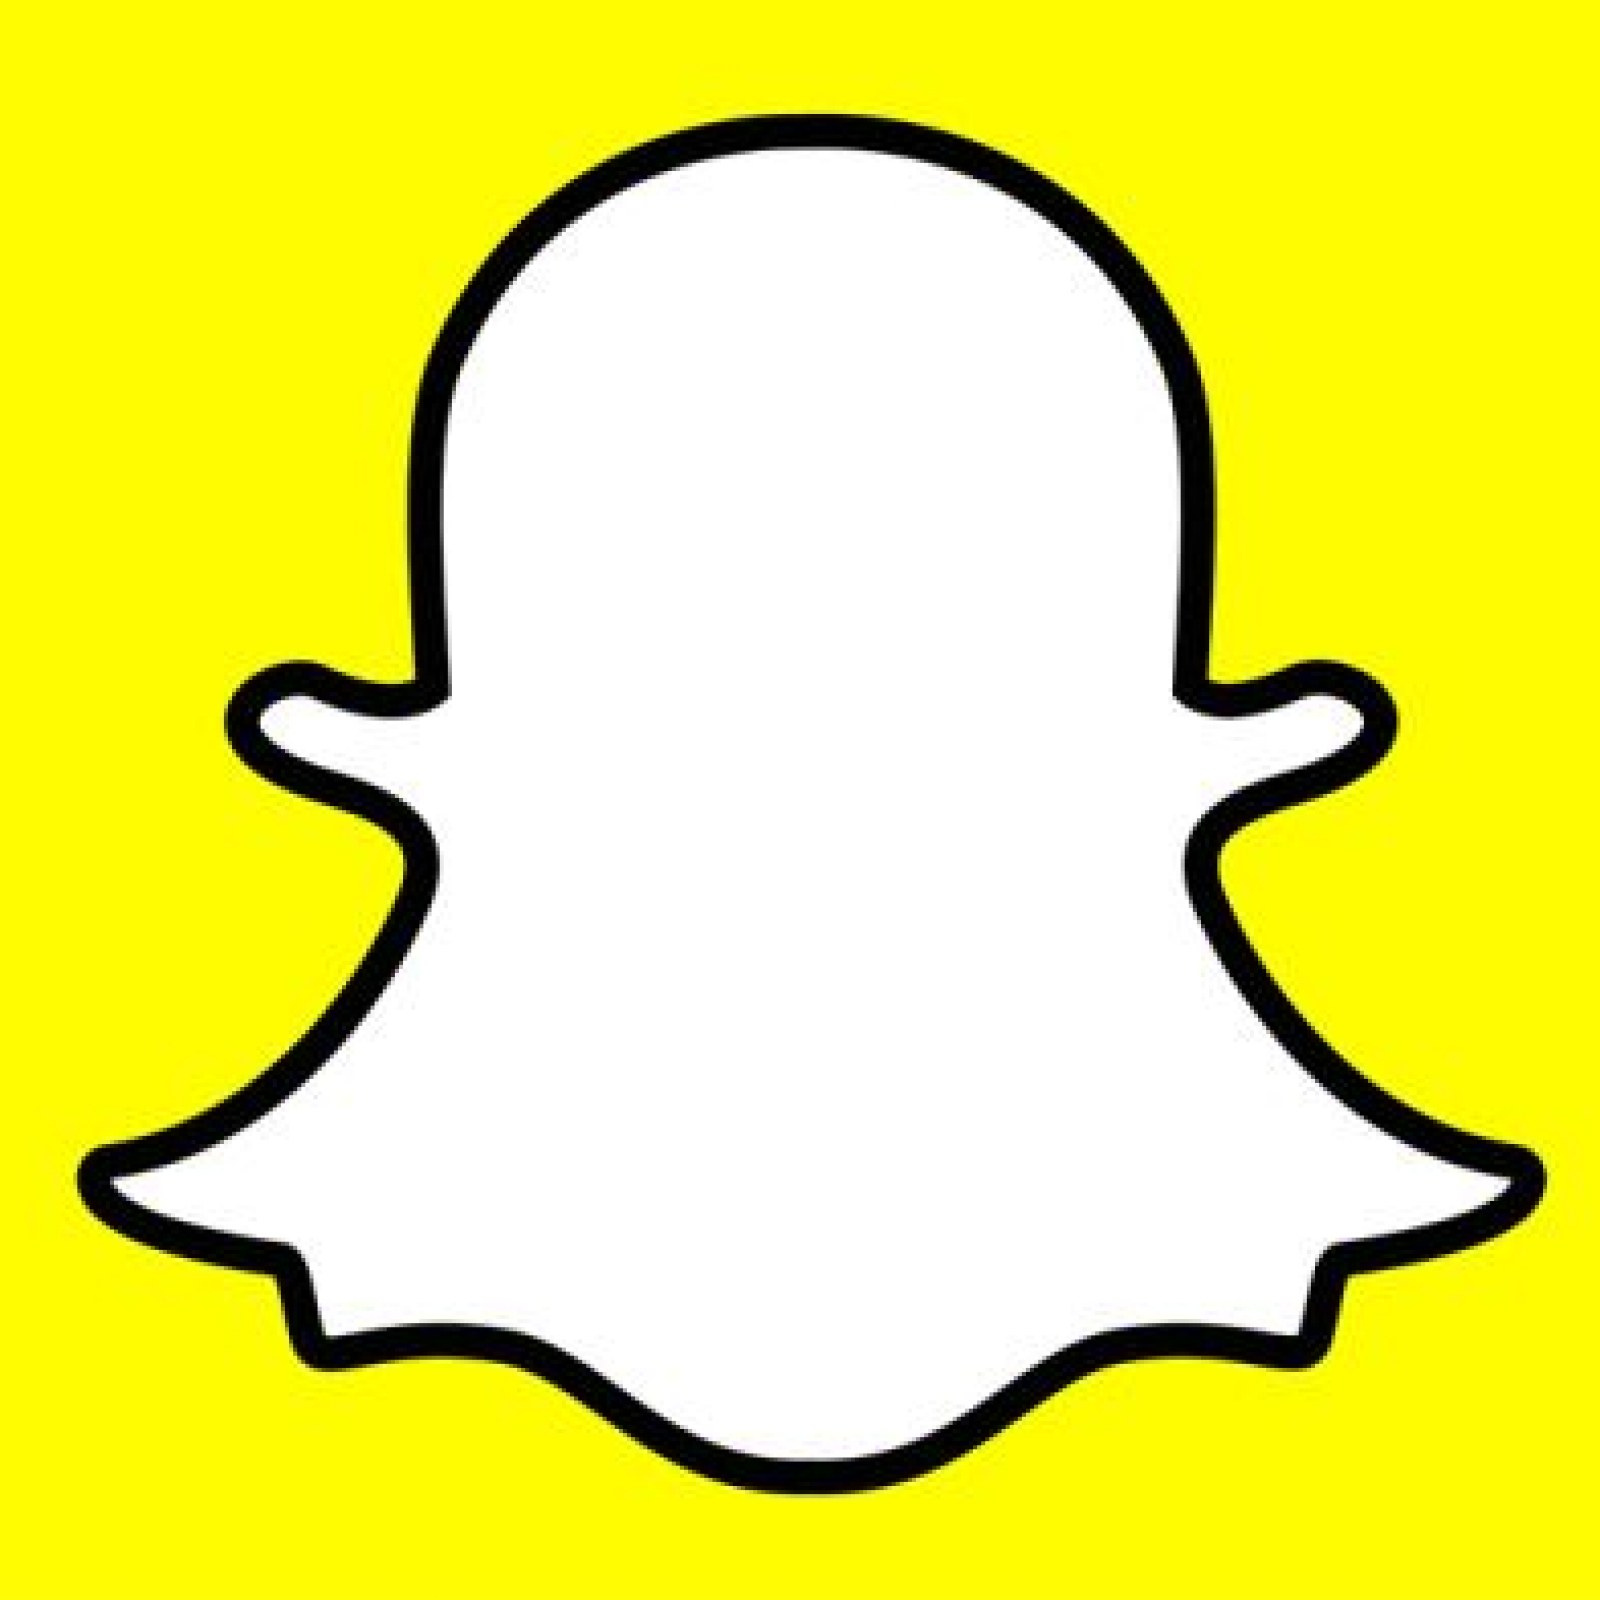 How to Play Snapchat Videos in Reverse